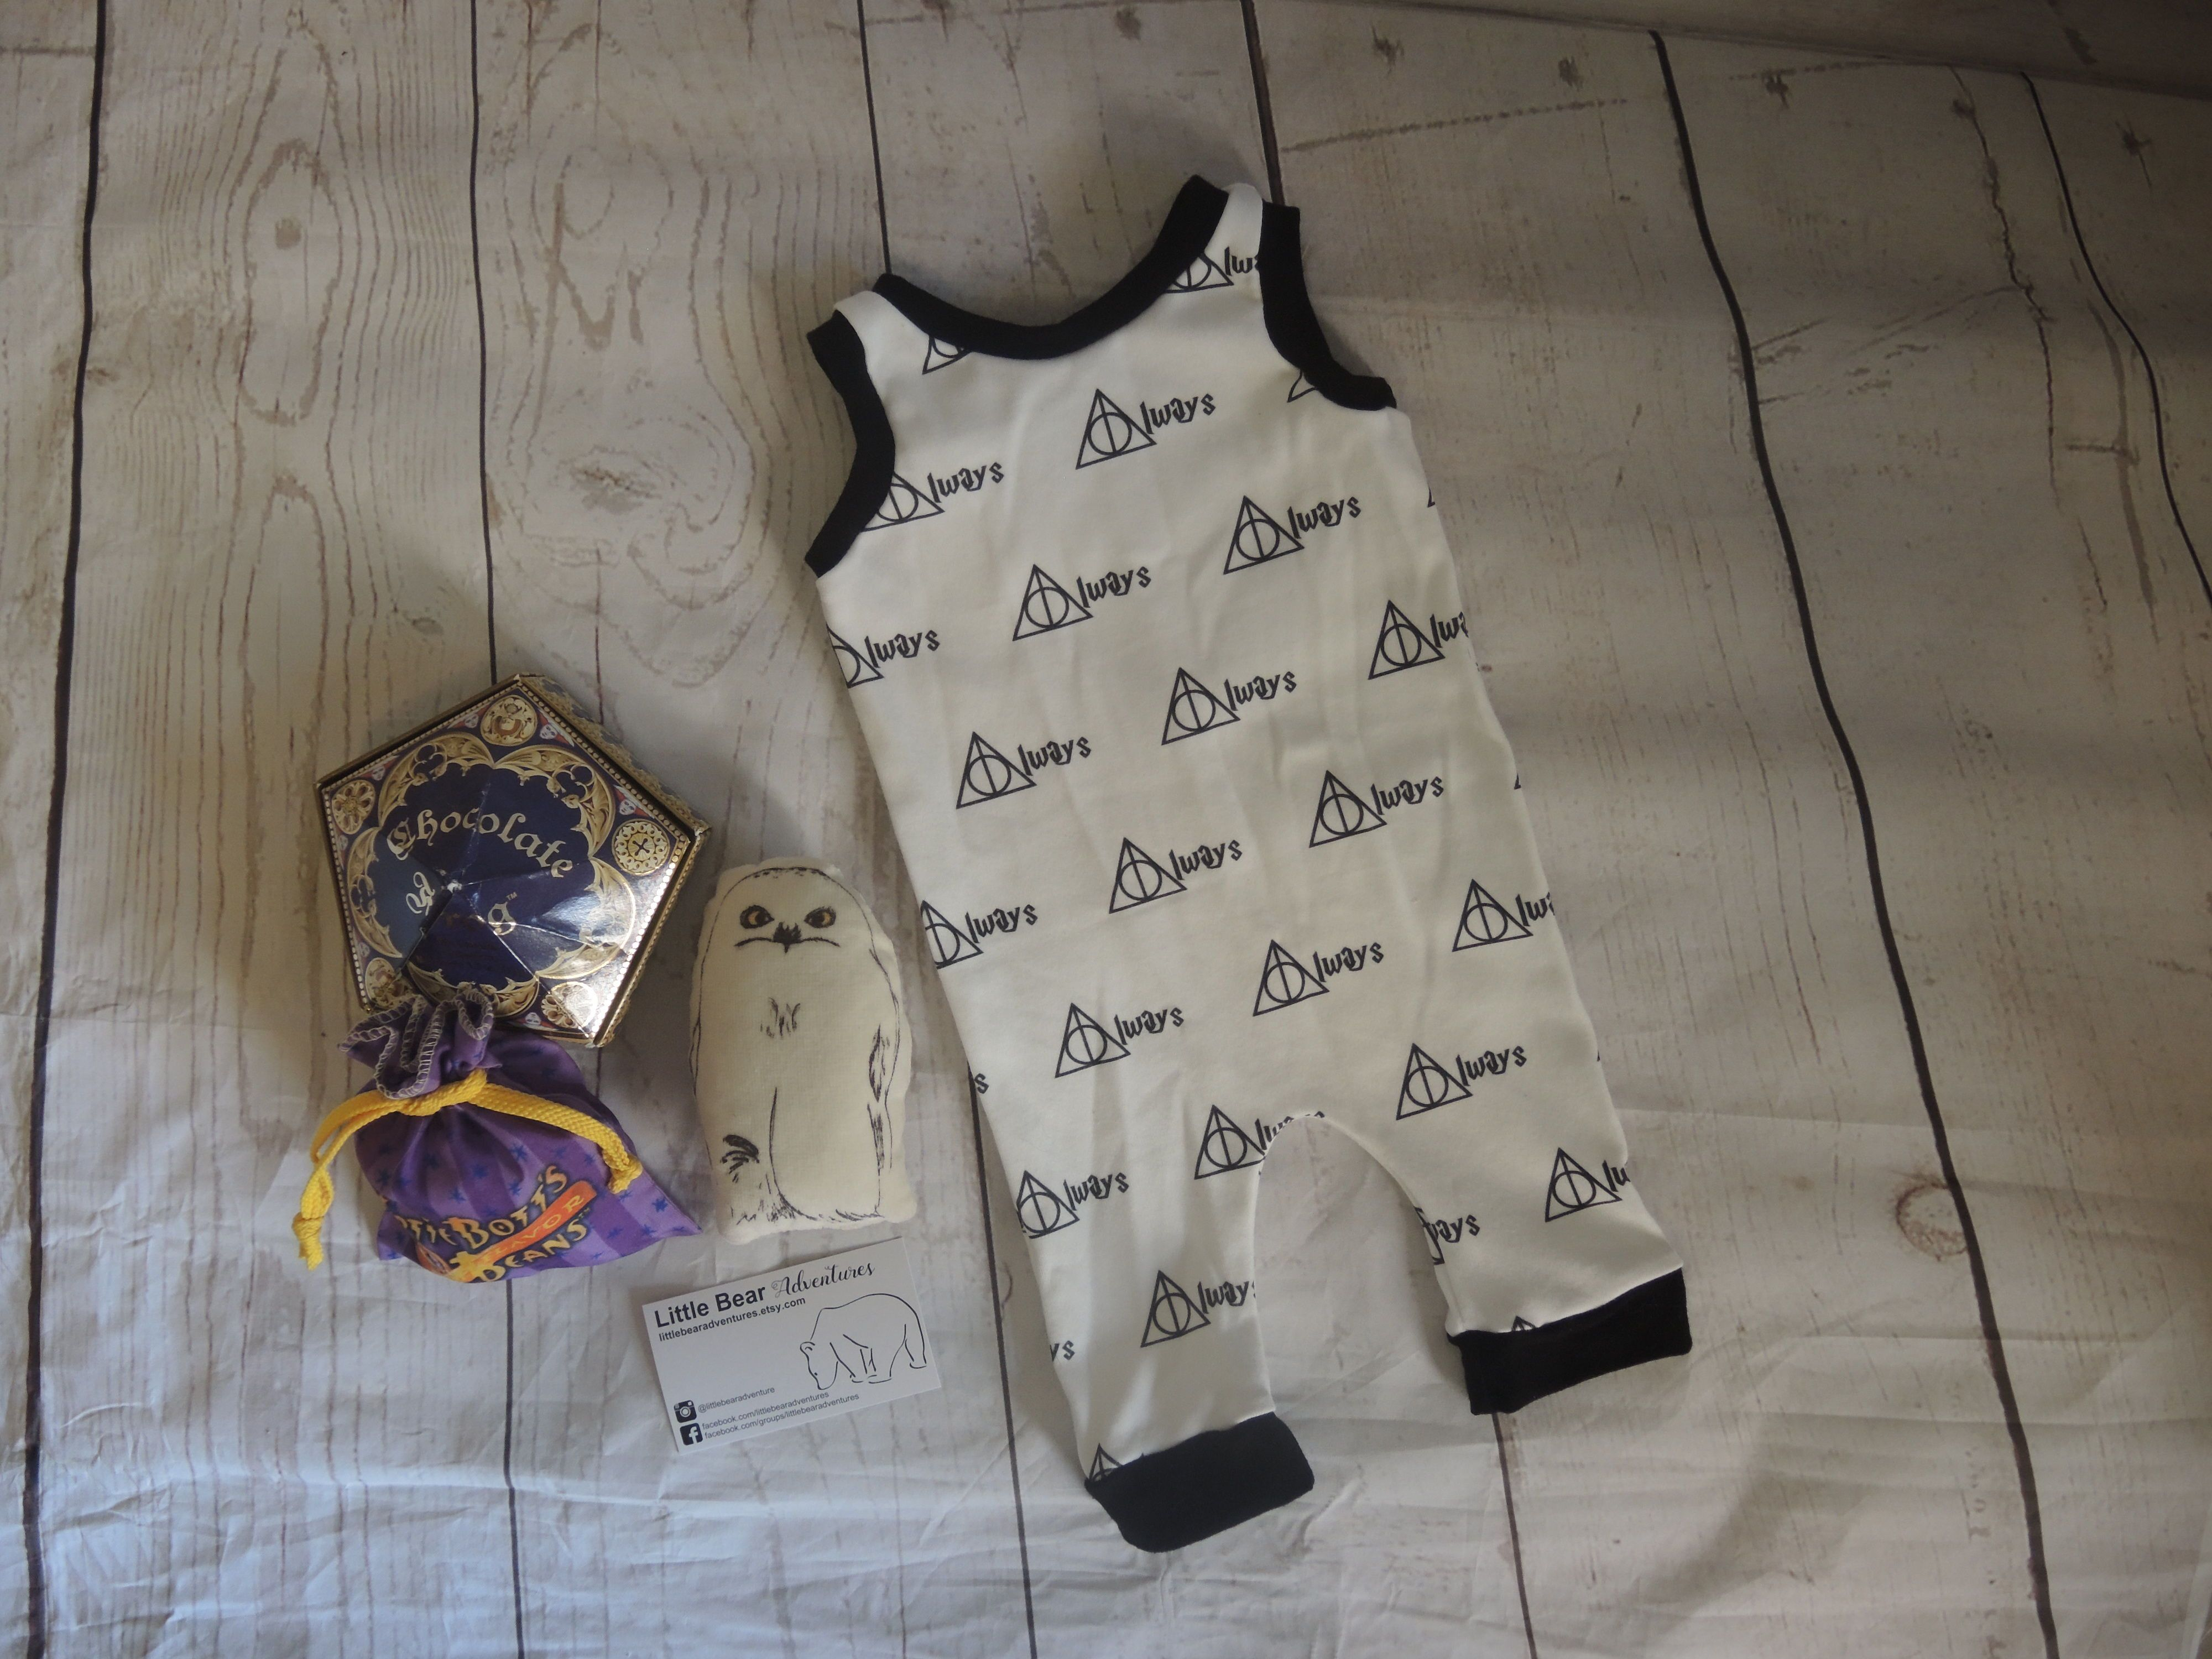 e8c69d86c Harry Potter Deathly Hallows Always organic baby romper - perfect for  parents of the newest Potter Generation! #harrypotterbaby #organicbaby